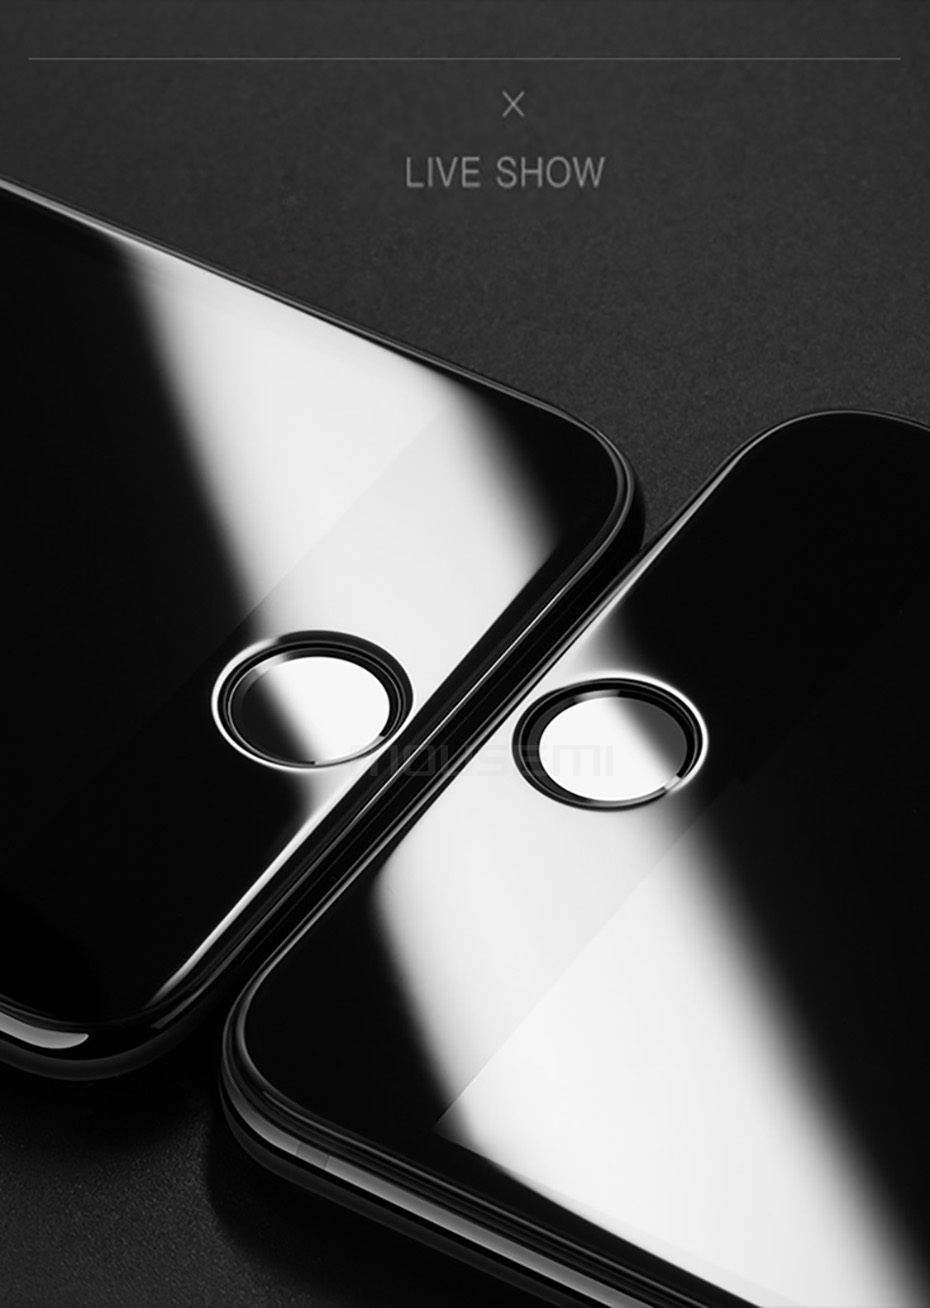 MOUSEMI 6D Full Protective Glass For iPhone X 9H Screen Protectors Film Curved Edge For iPhone 7 8  6s 6 Plus Tempered Glass On (12)